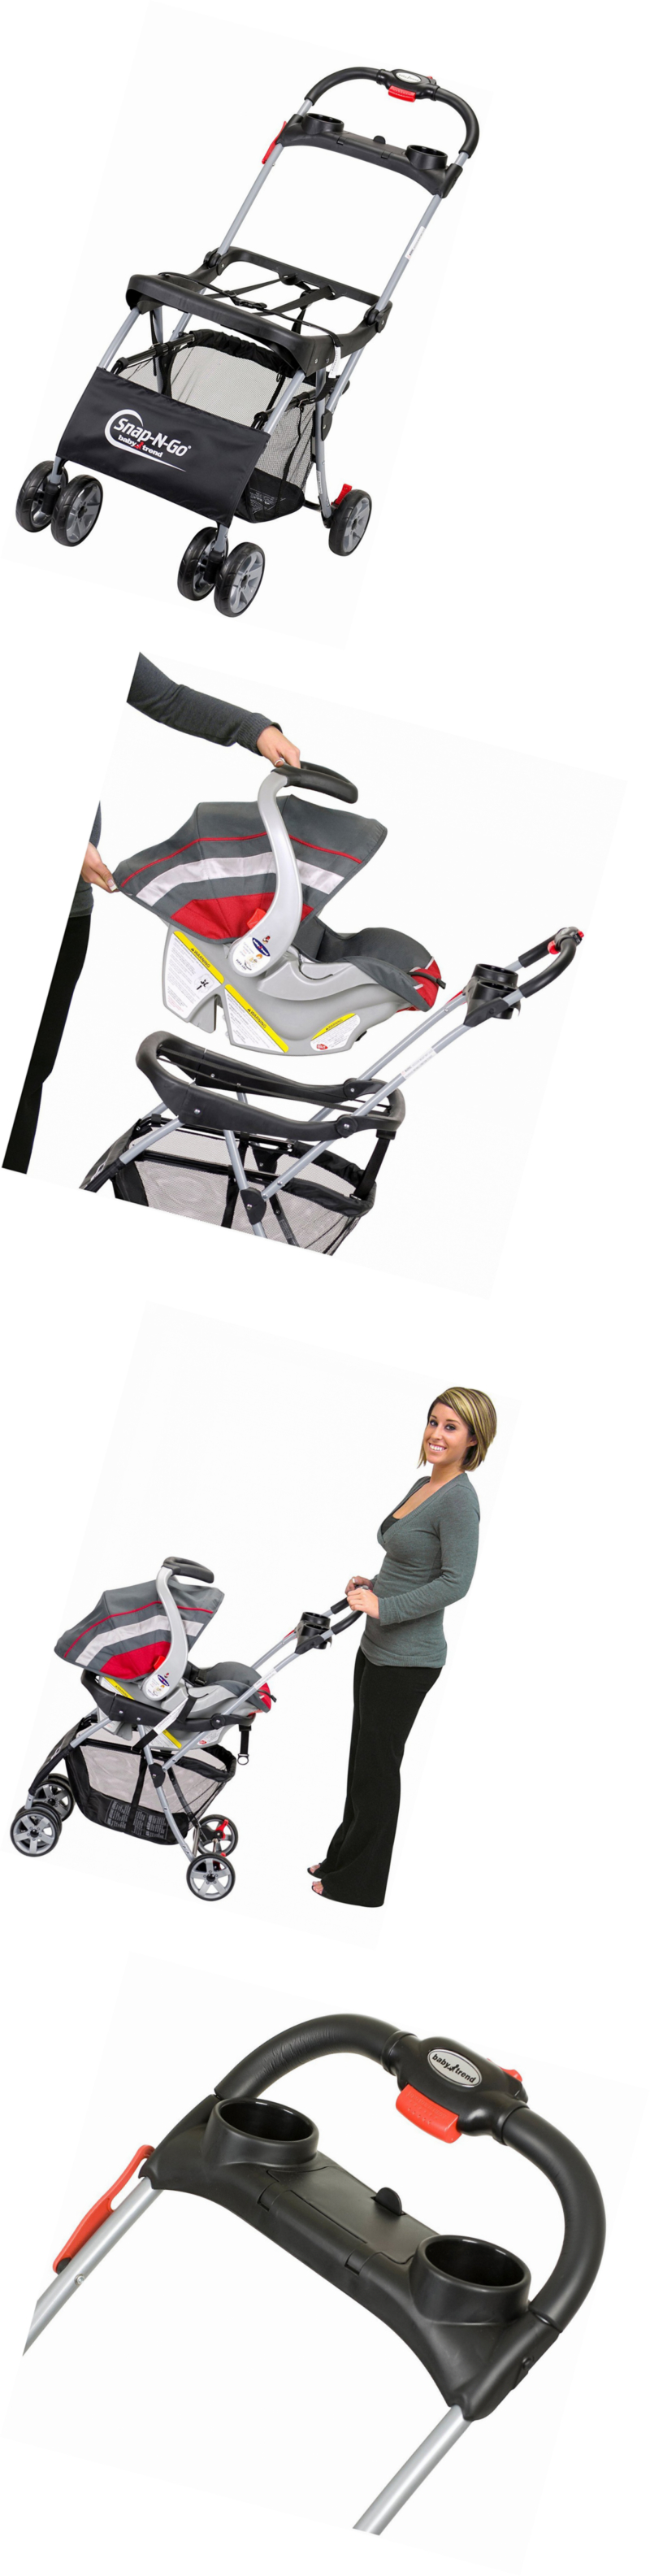 Baby Trend Snap N Go Ex Universal Infant Car Seat Carrier BUY